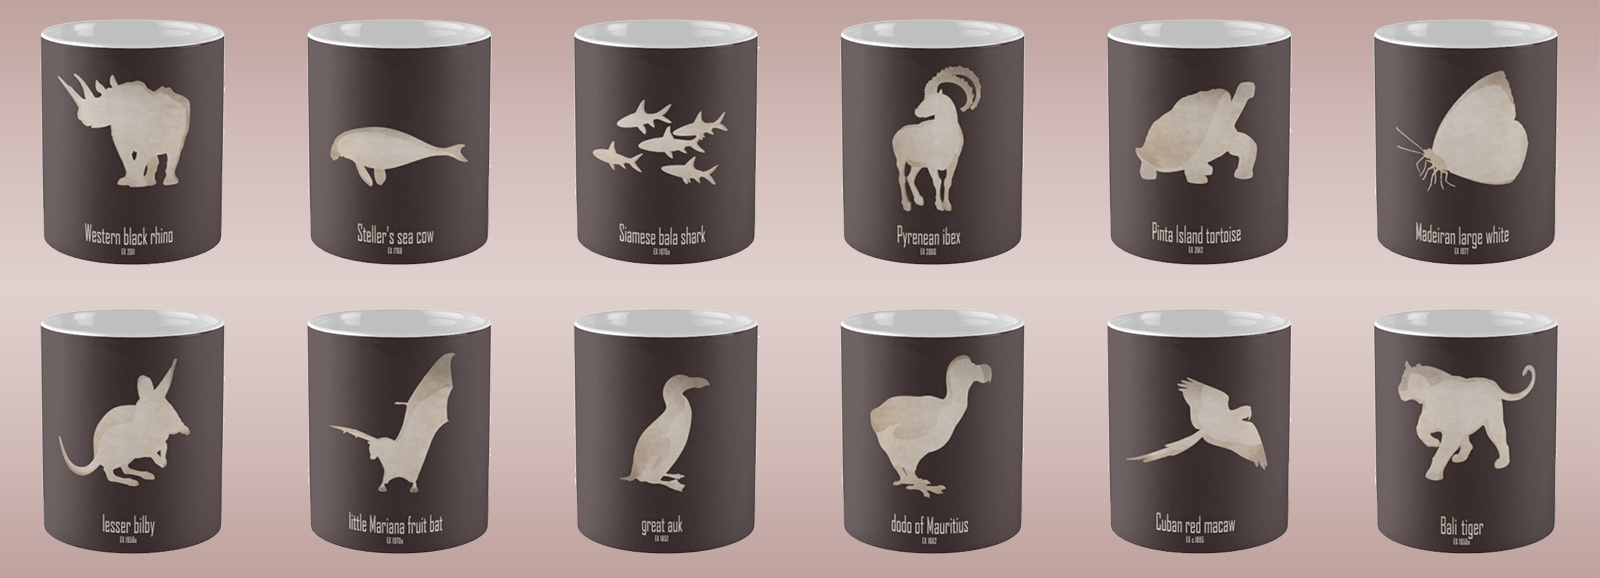 mug coffee tea cup travel extinct animals names list species recently extinct 20th century 21st century IUCN red list wildlife conservation efforts save wildlife planet earth logo biodiversity environmentalist emblematic symbol